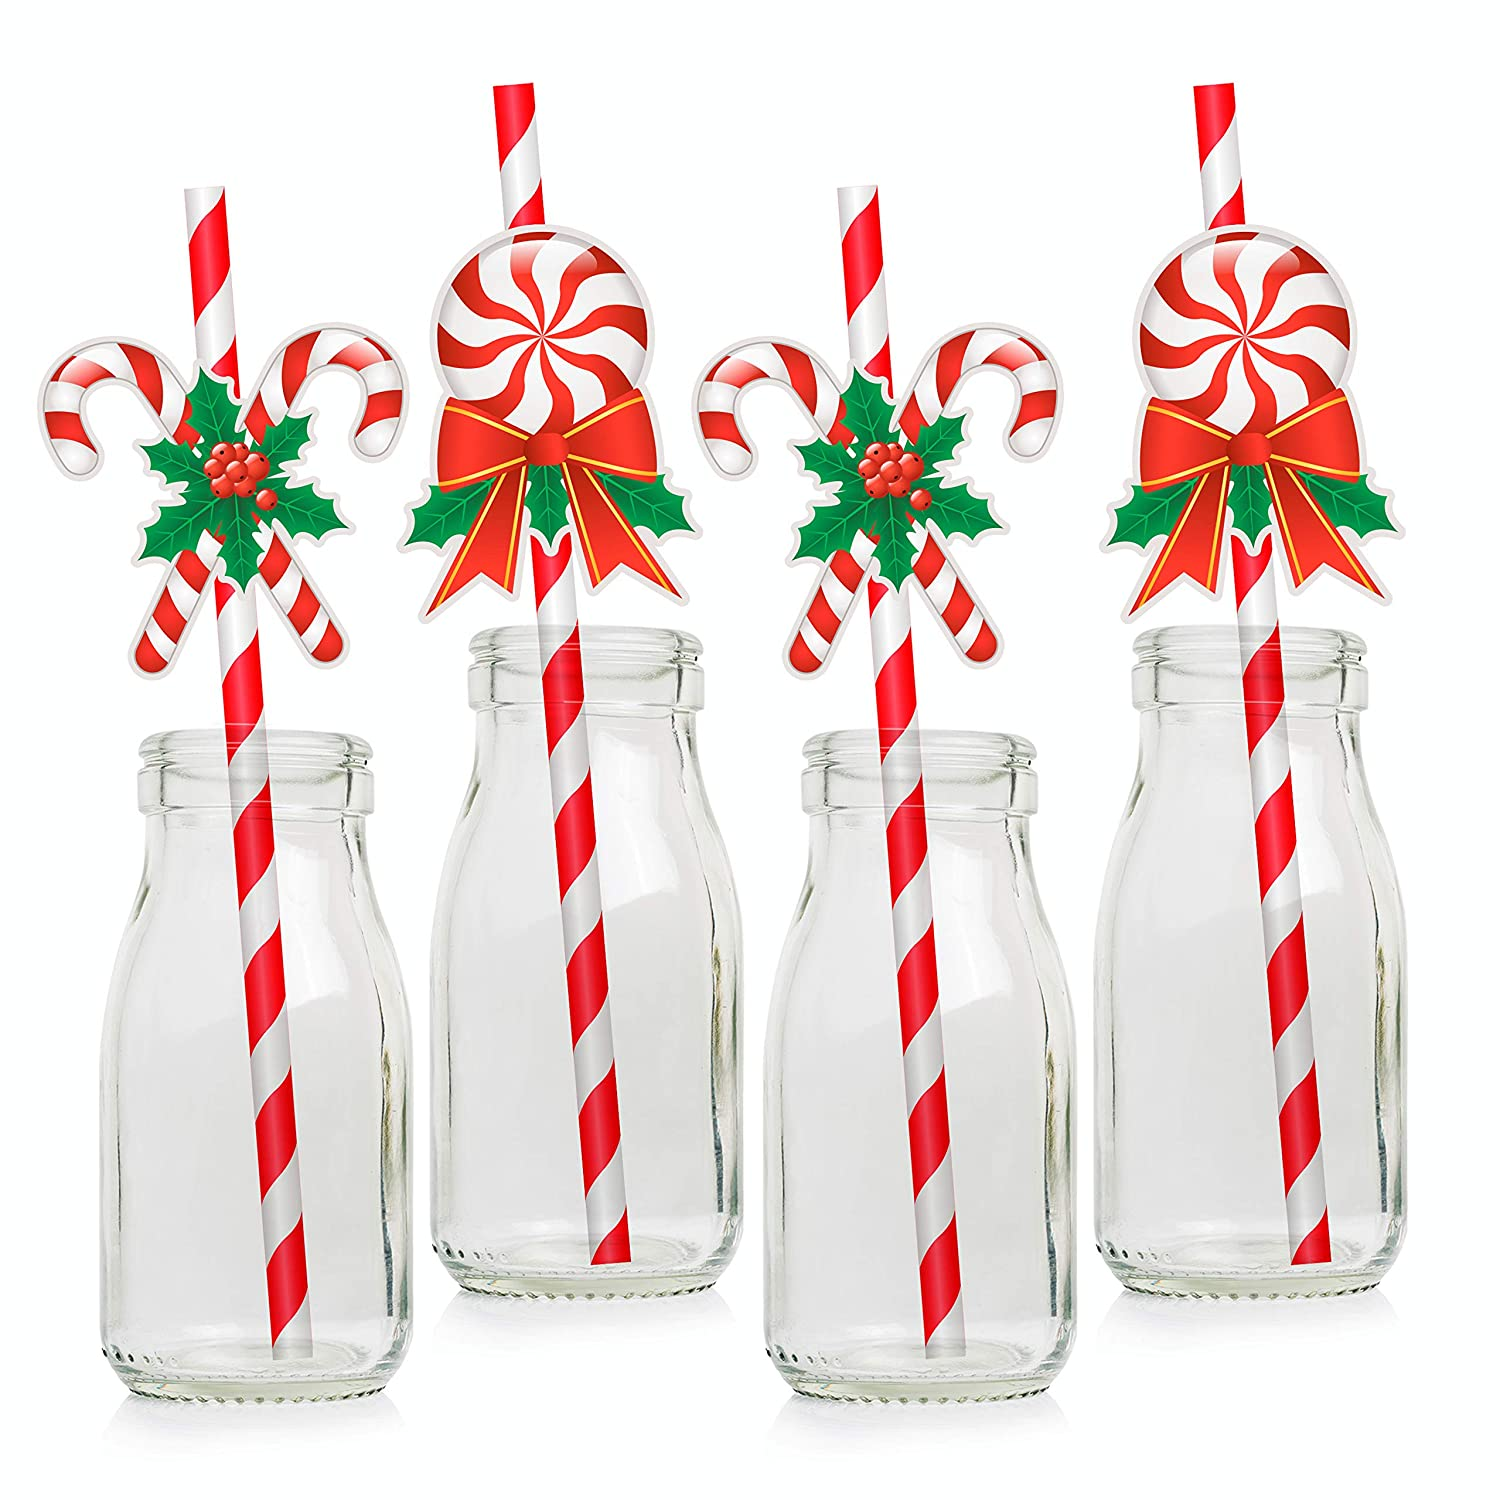 Candy Cane Paper Drinking Straws - Christmas Party Favors Decorations Supplies Winter Holiday - 24 PCS